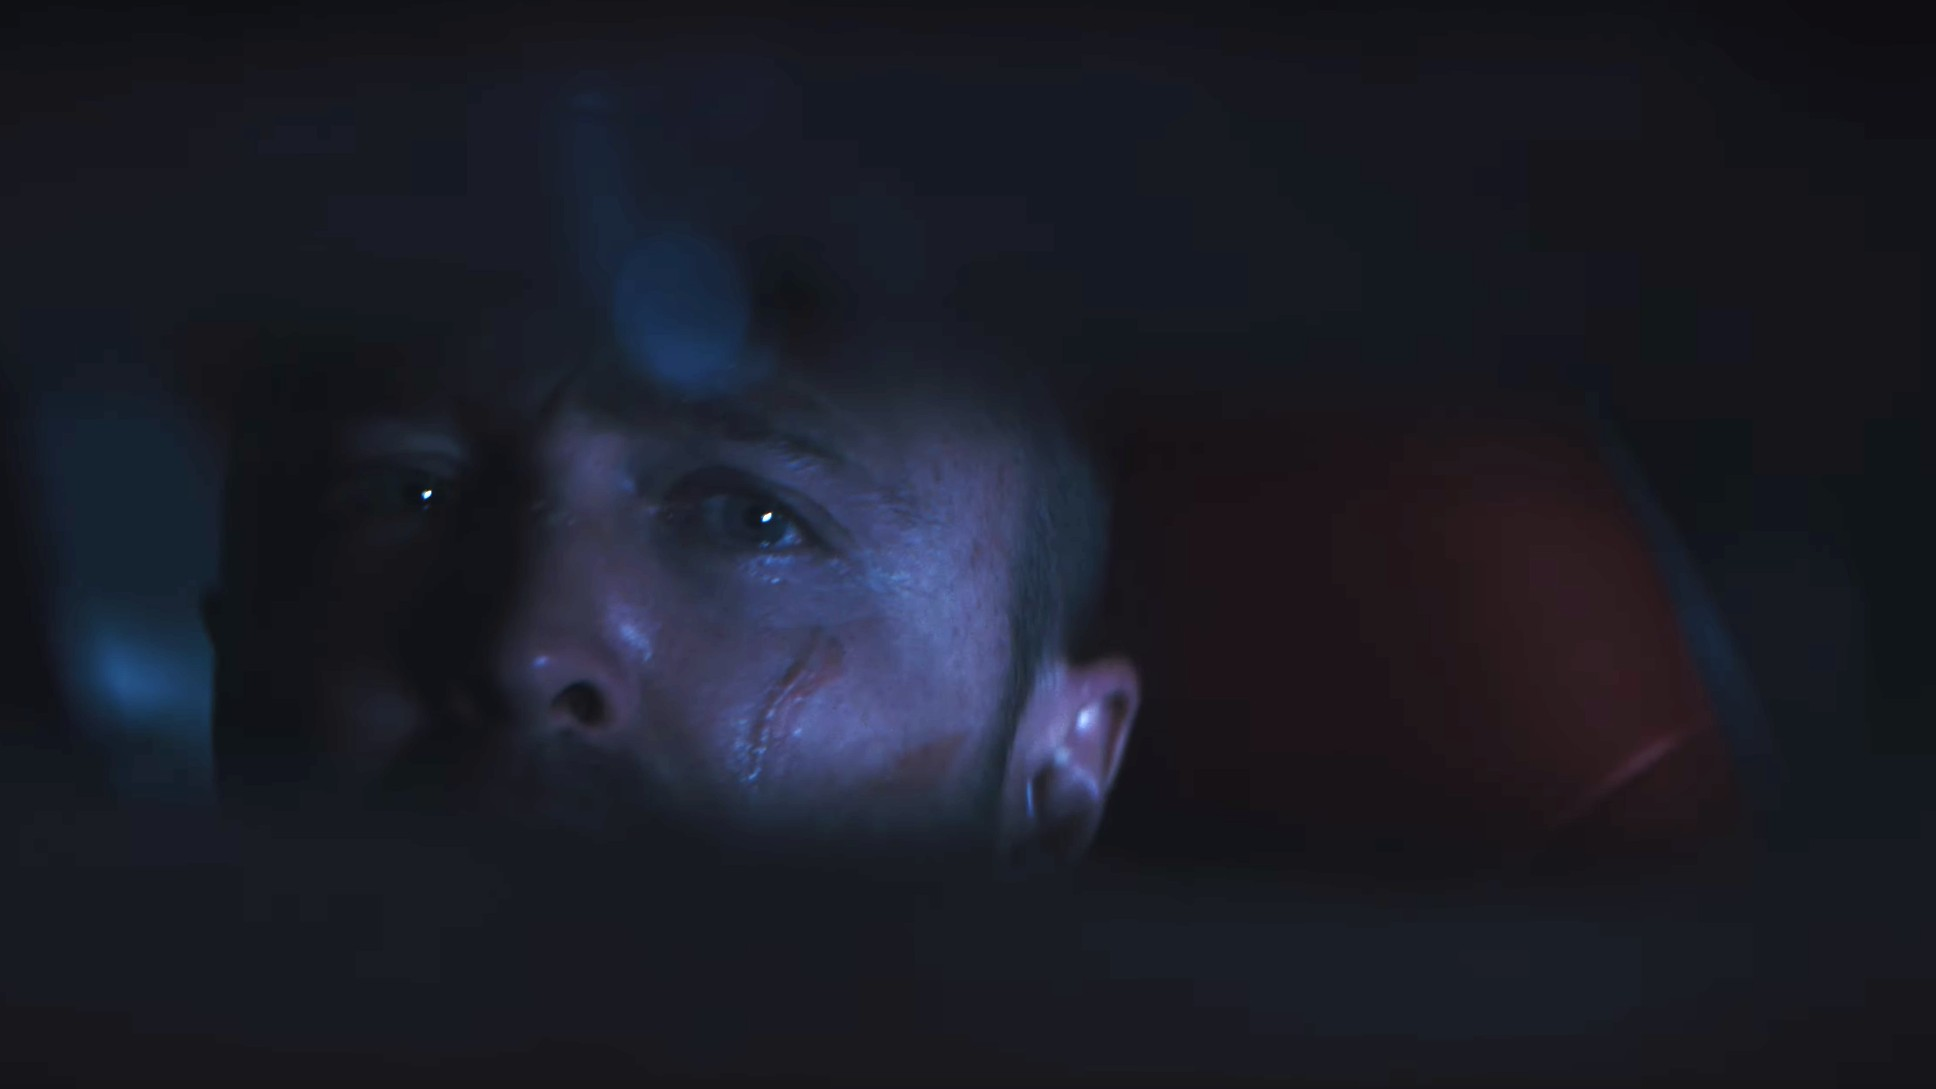 """El Camino: A Breaking Bad Movie"": Jesse Pinkman escapa de Walter White y de su pasado en un nuevo teaser"